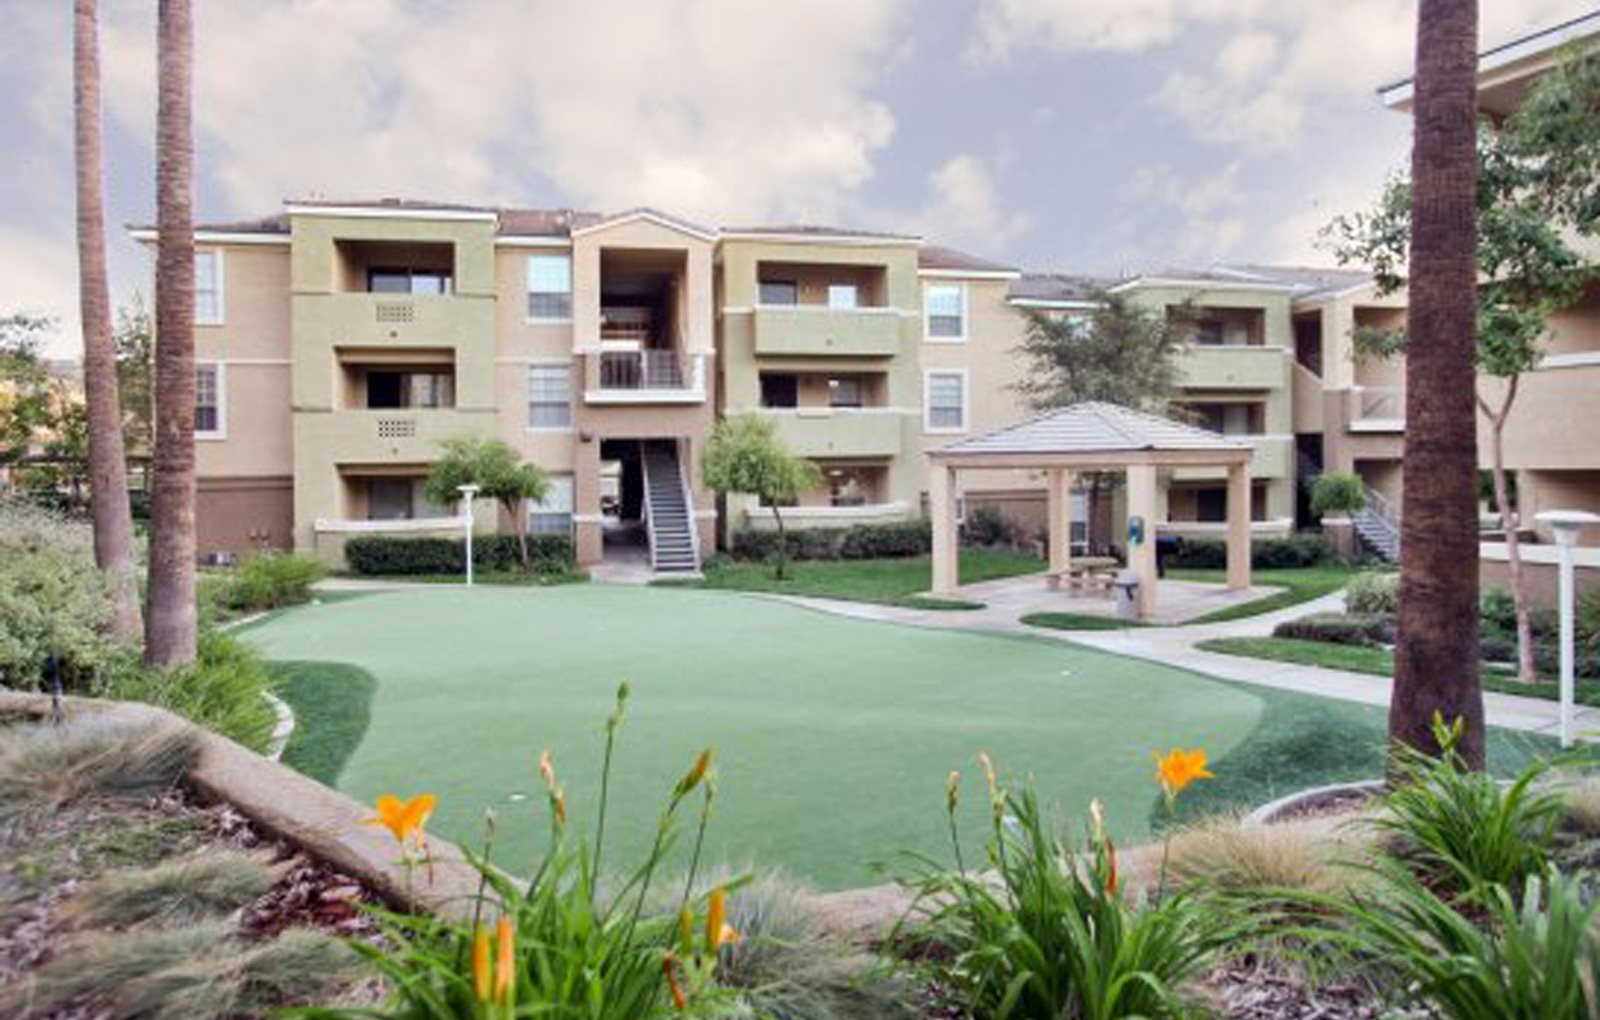 Riverside, CA Apartments | Stone Canyon Apartments